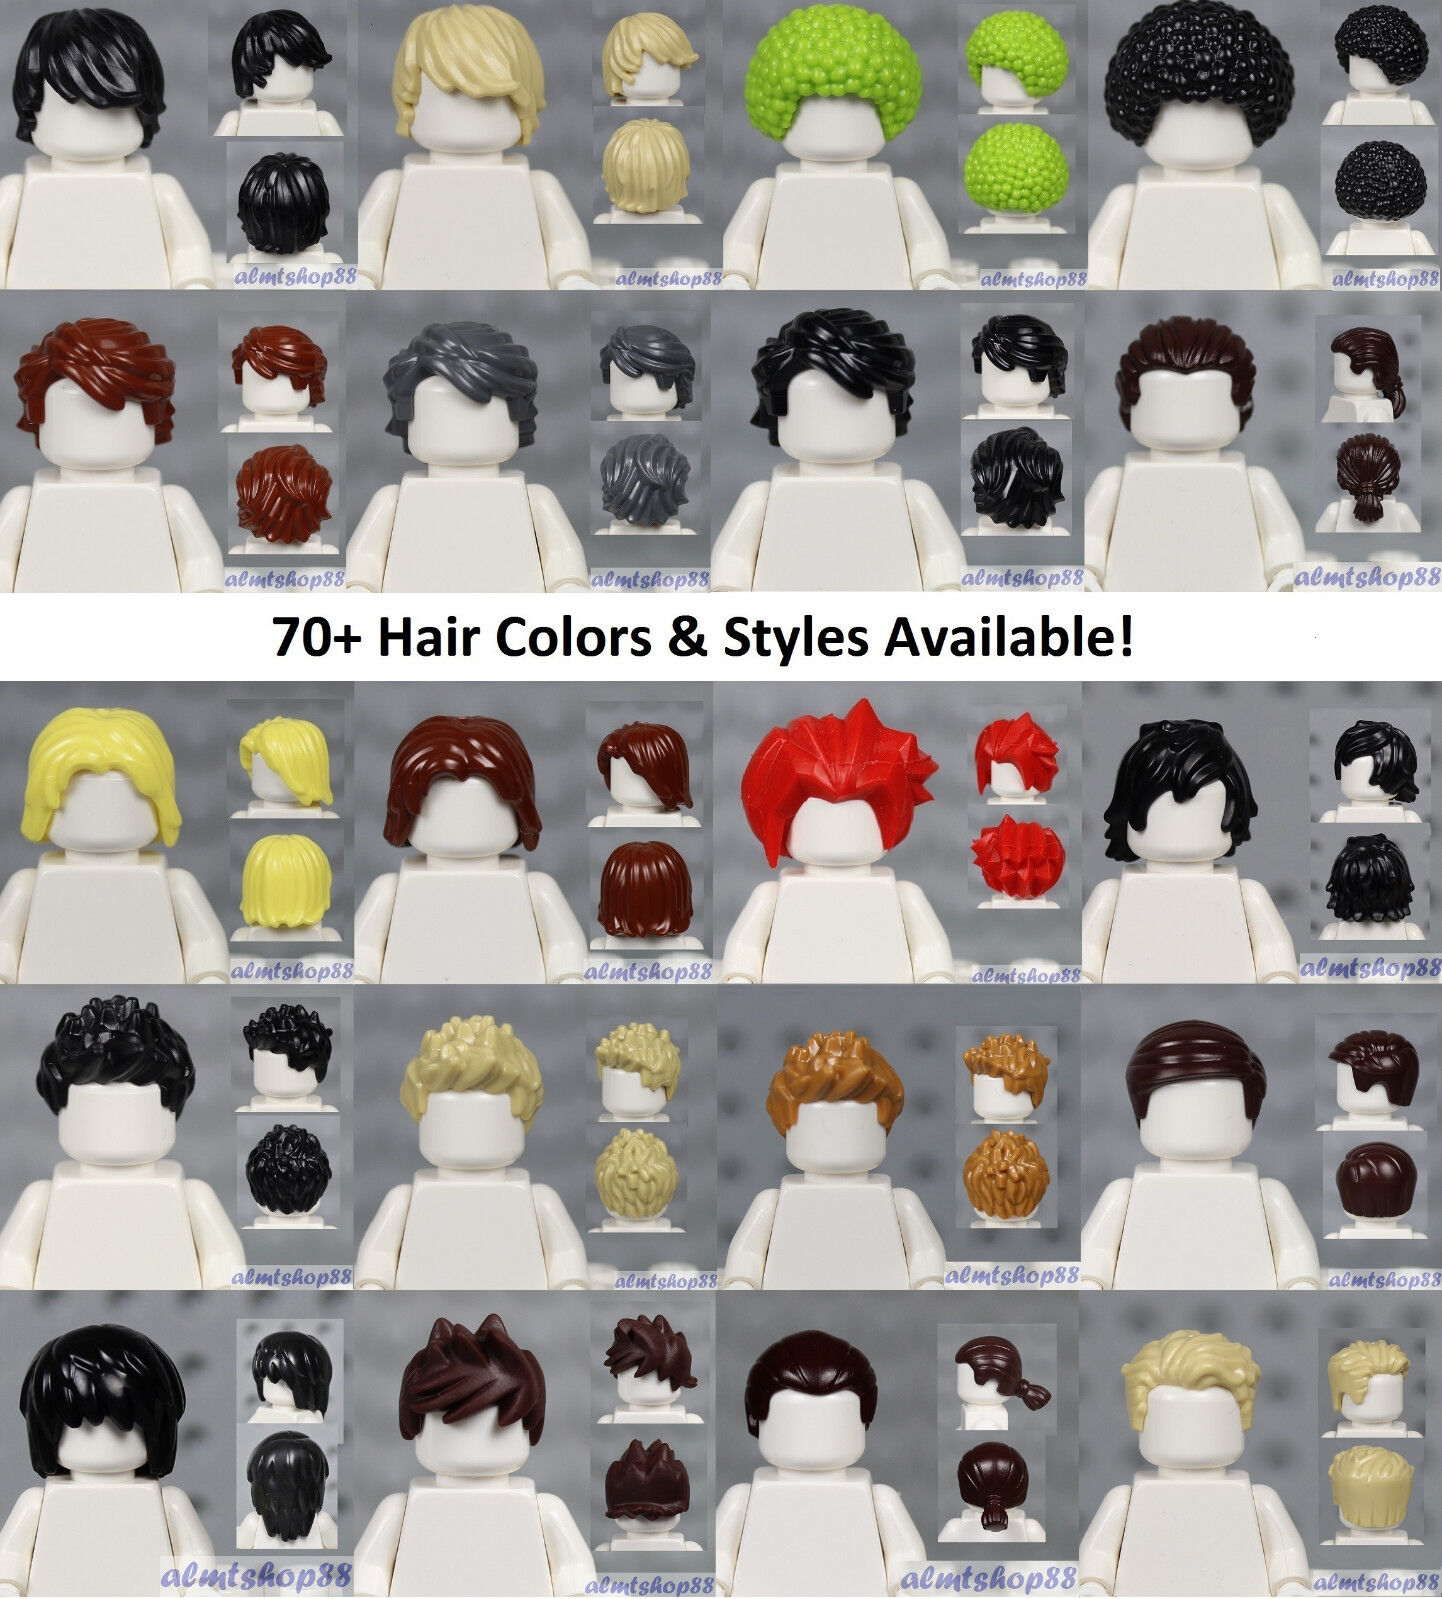 Hair Tousled with Side Part colour mix  NEW Lego City 3 x Minifigure